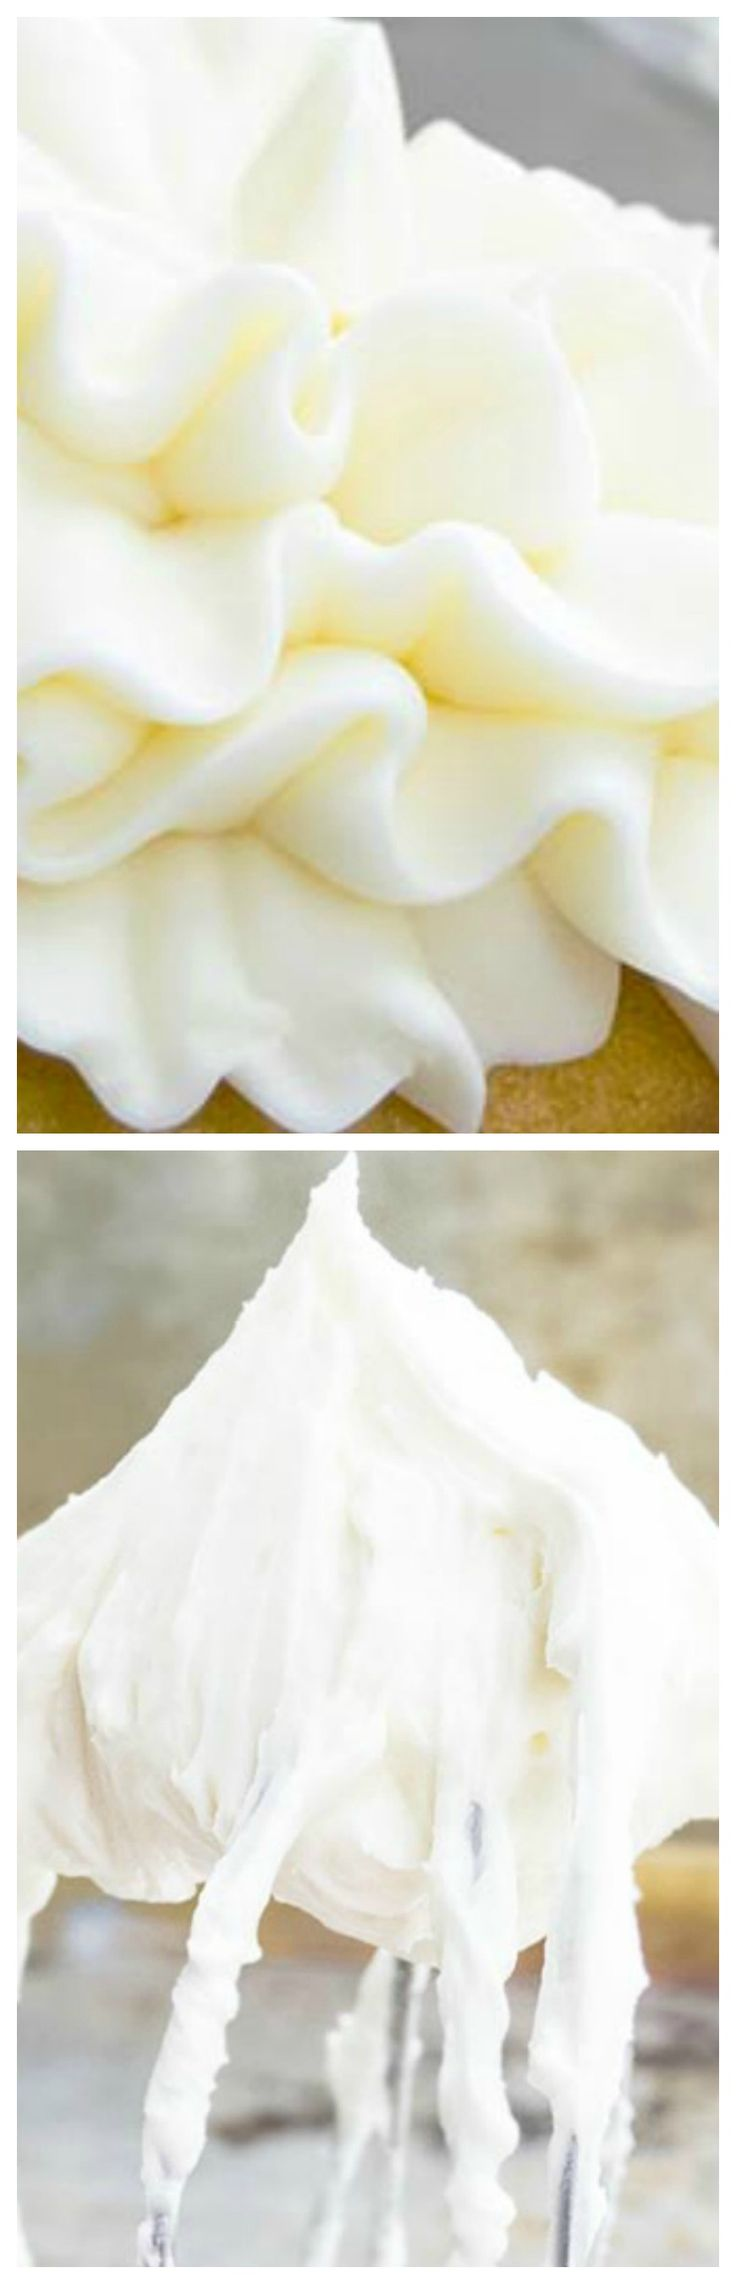 Best Cream Cheese Frosting ~ This is the best cream cheese frosting recipe for piping cupcakes and cake decorating... This stable icing is creamy, fluffy, easy to make and not runny!